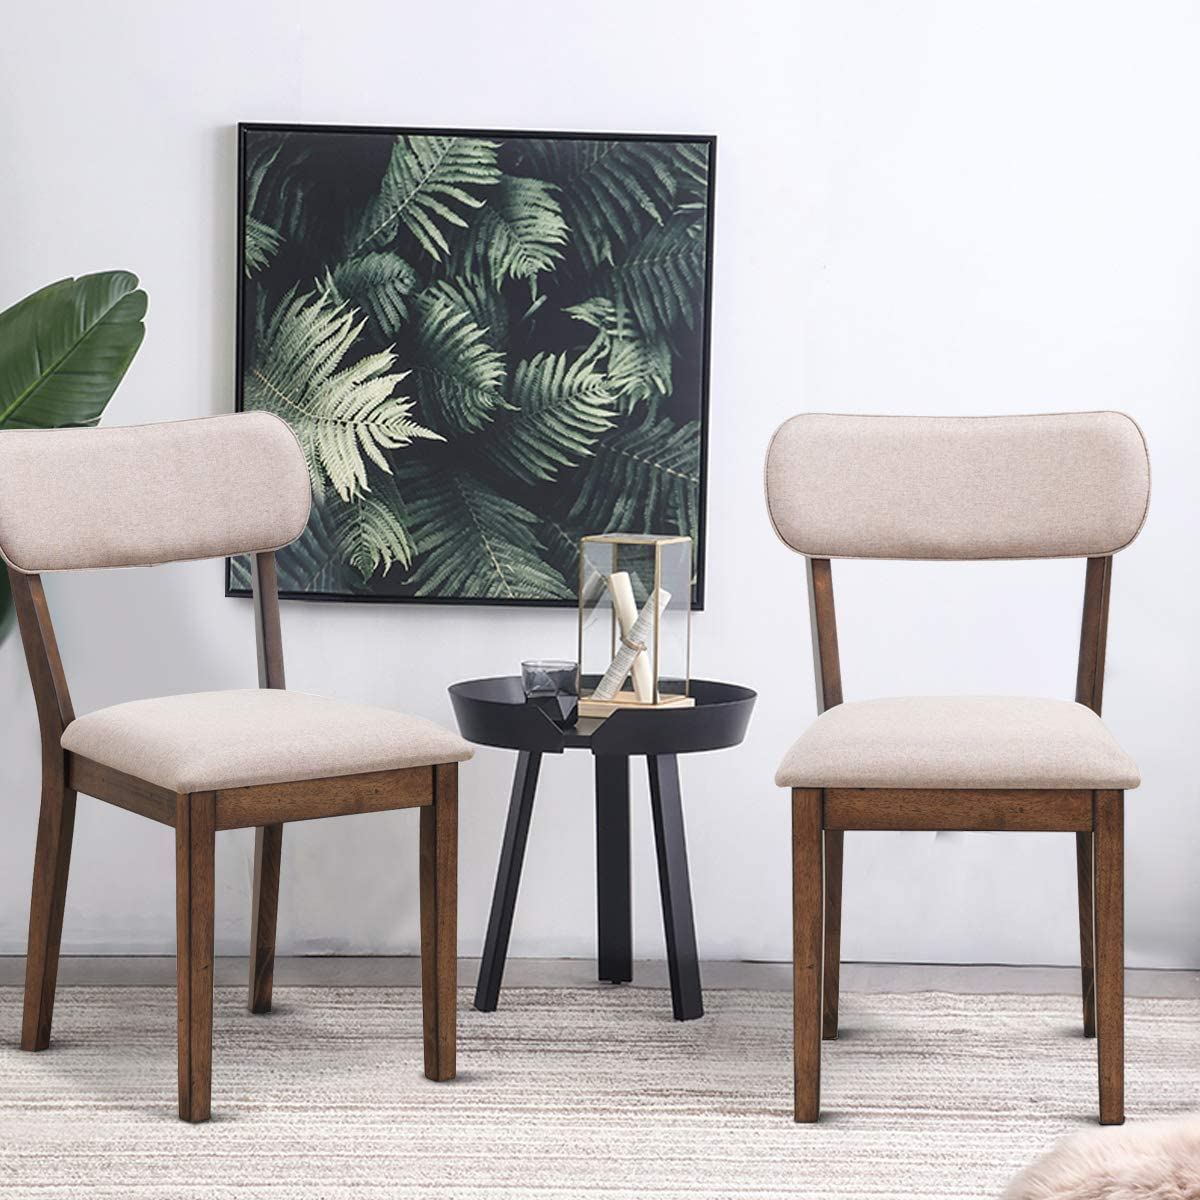 Giantex Set of 2 Mid Century Modern Dining Chairs w Wood Legs Upholstered Seat, 2 Armless Fabric Upholstered Dining Side Chairs